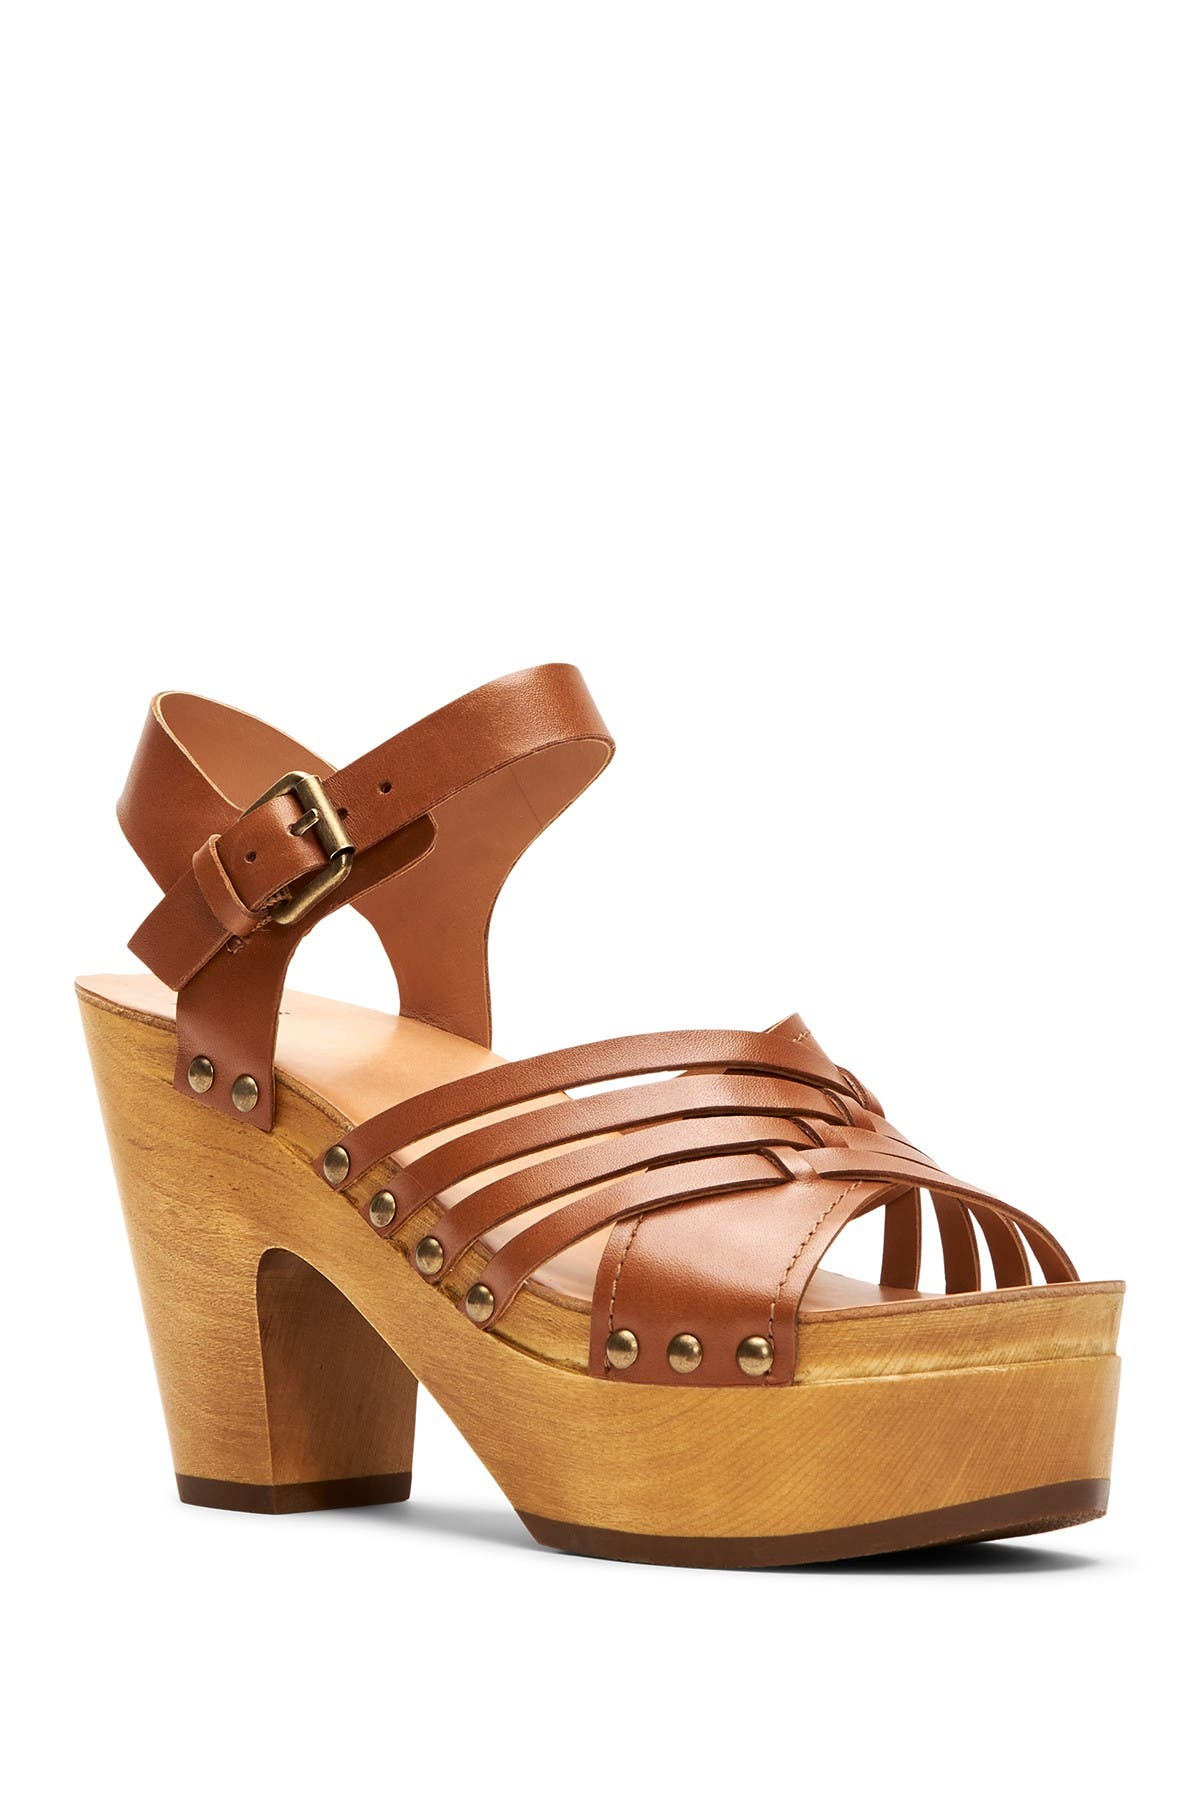 Women's Clogs Clearance | Nordstrom Rack